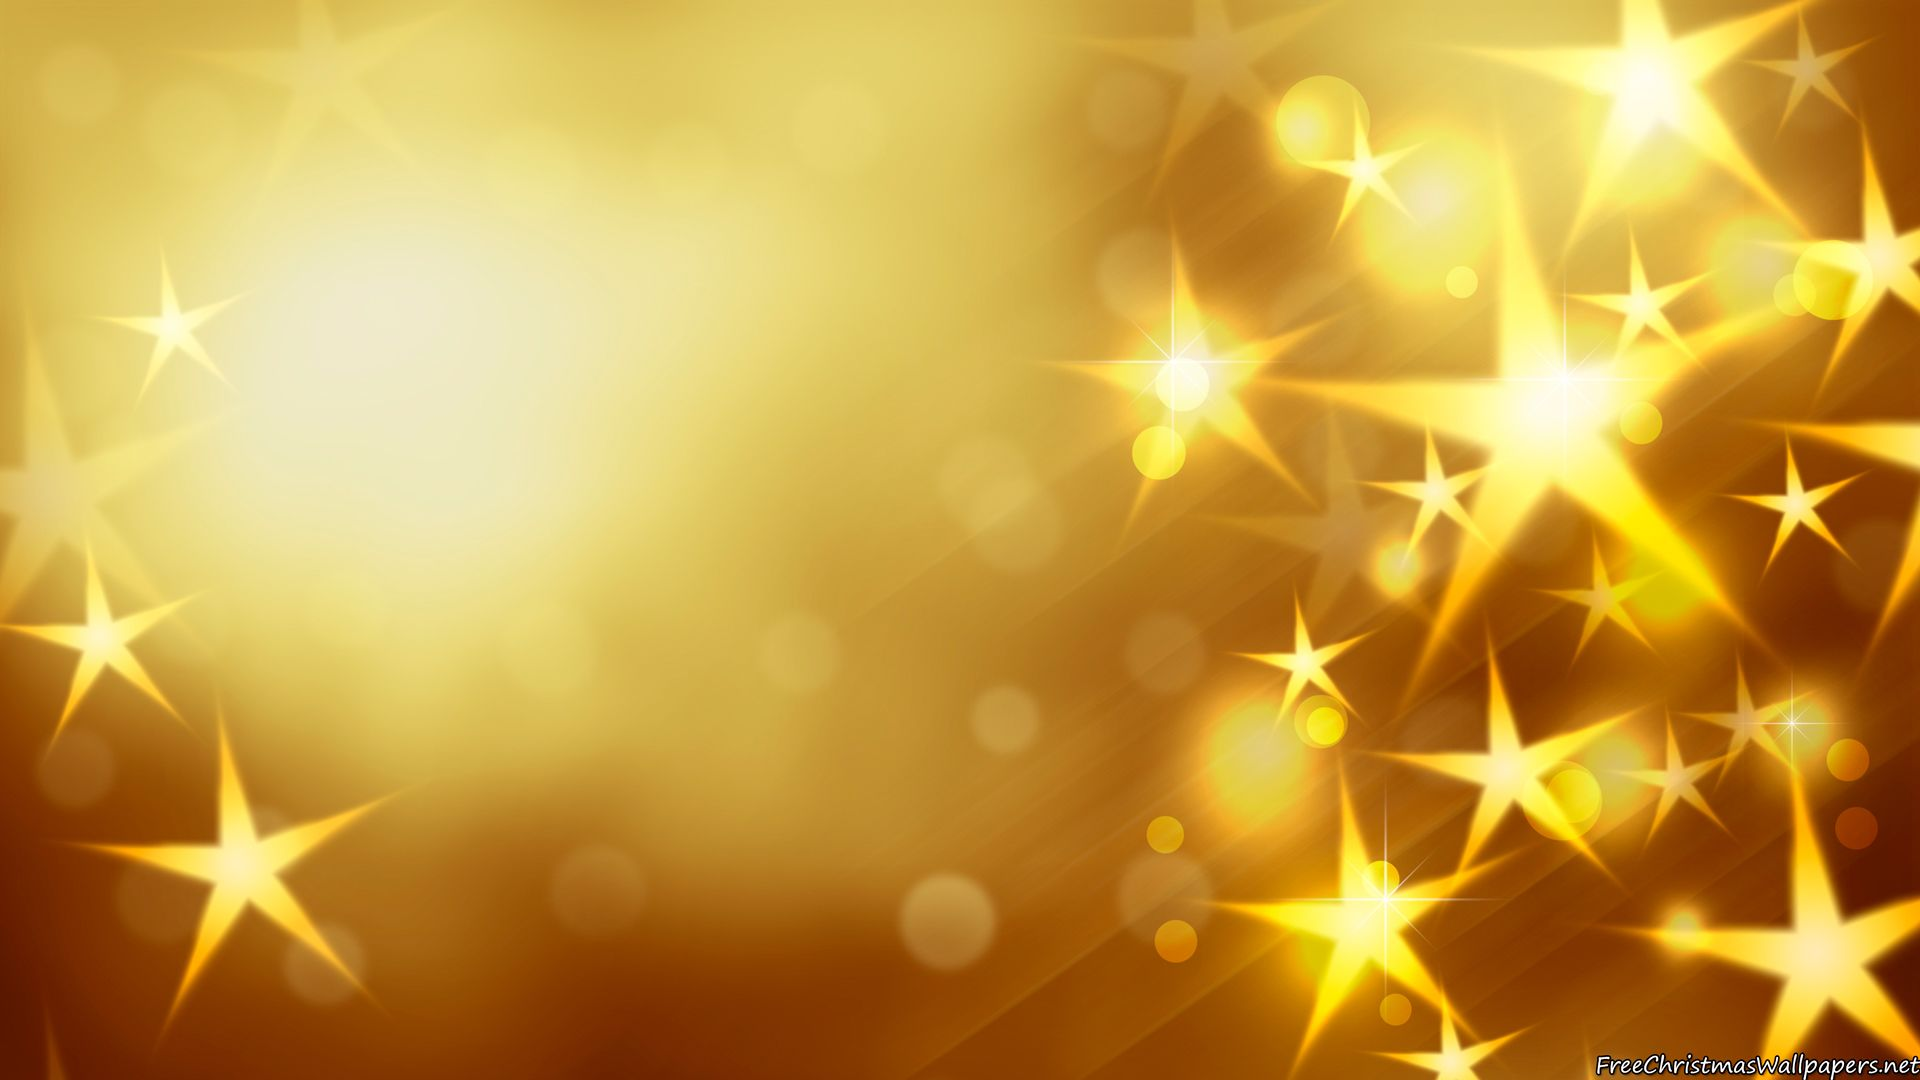 Christmas gold background 1920 1080 high definition for Gold wallpaper designs